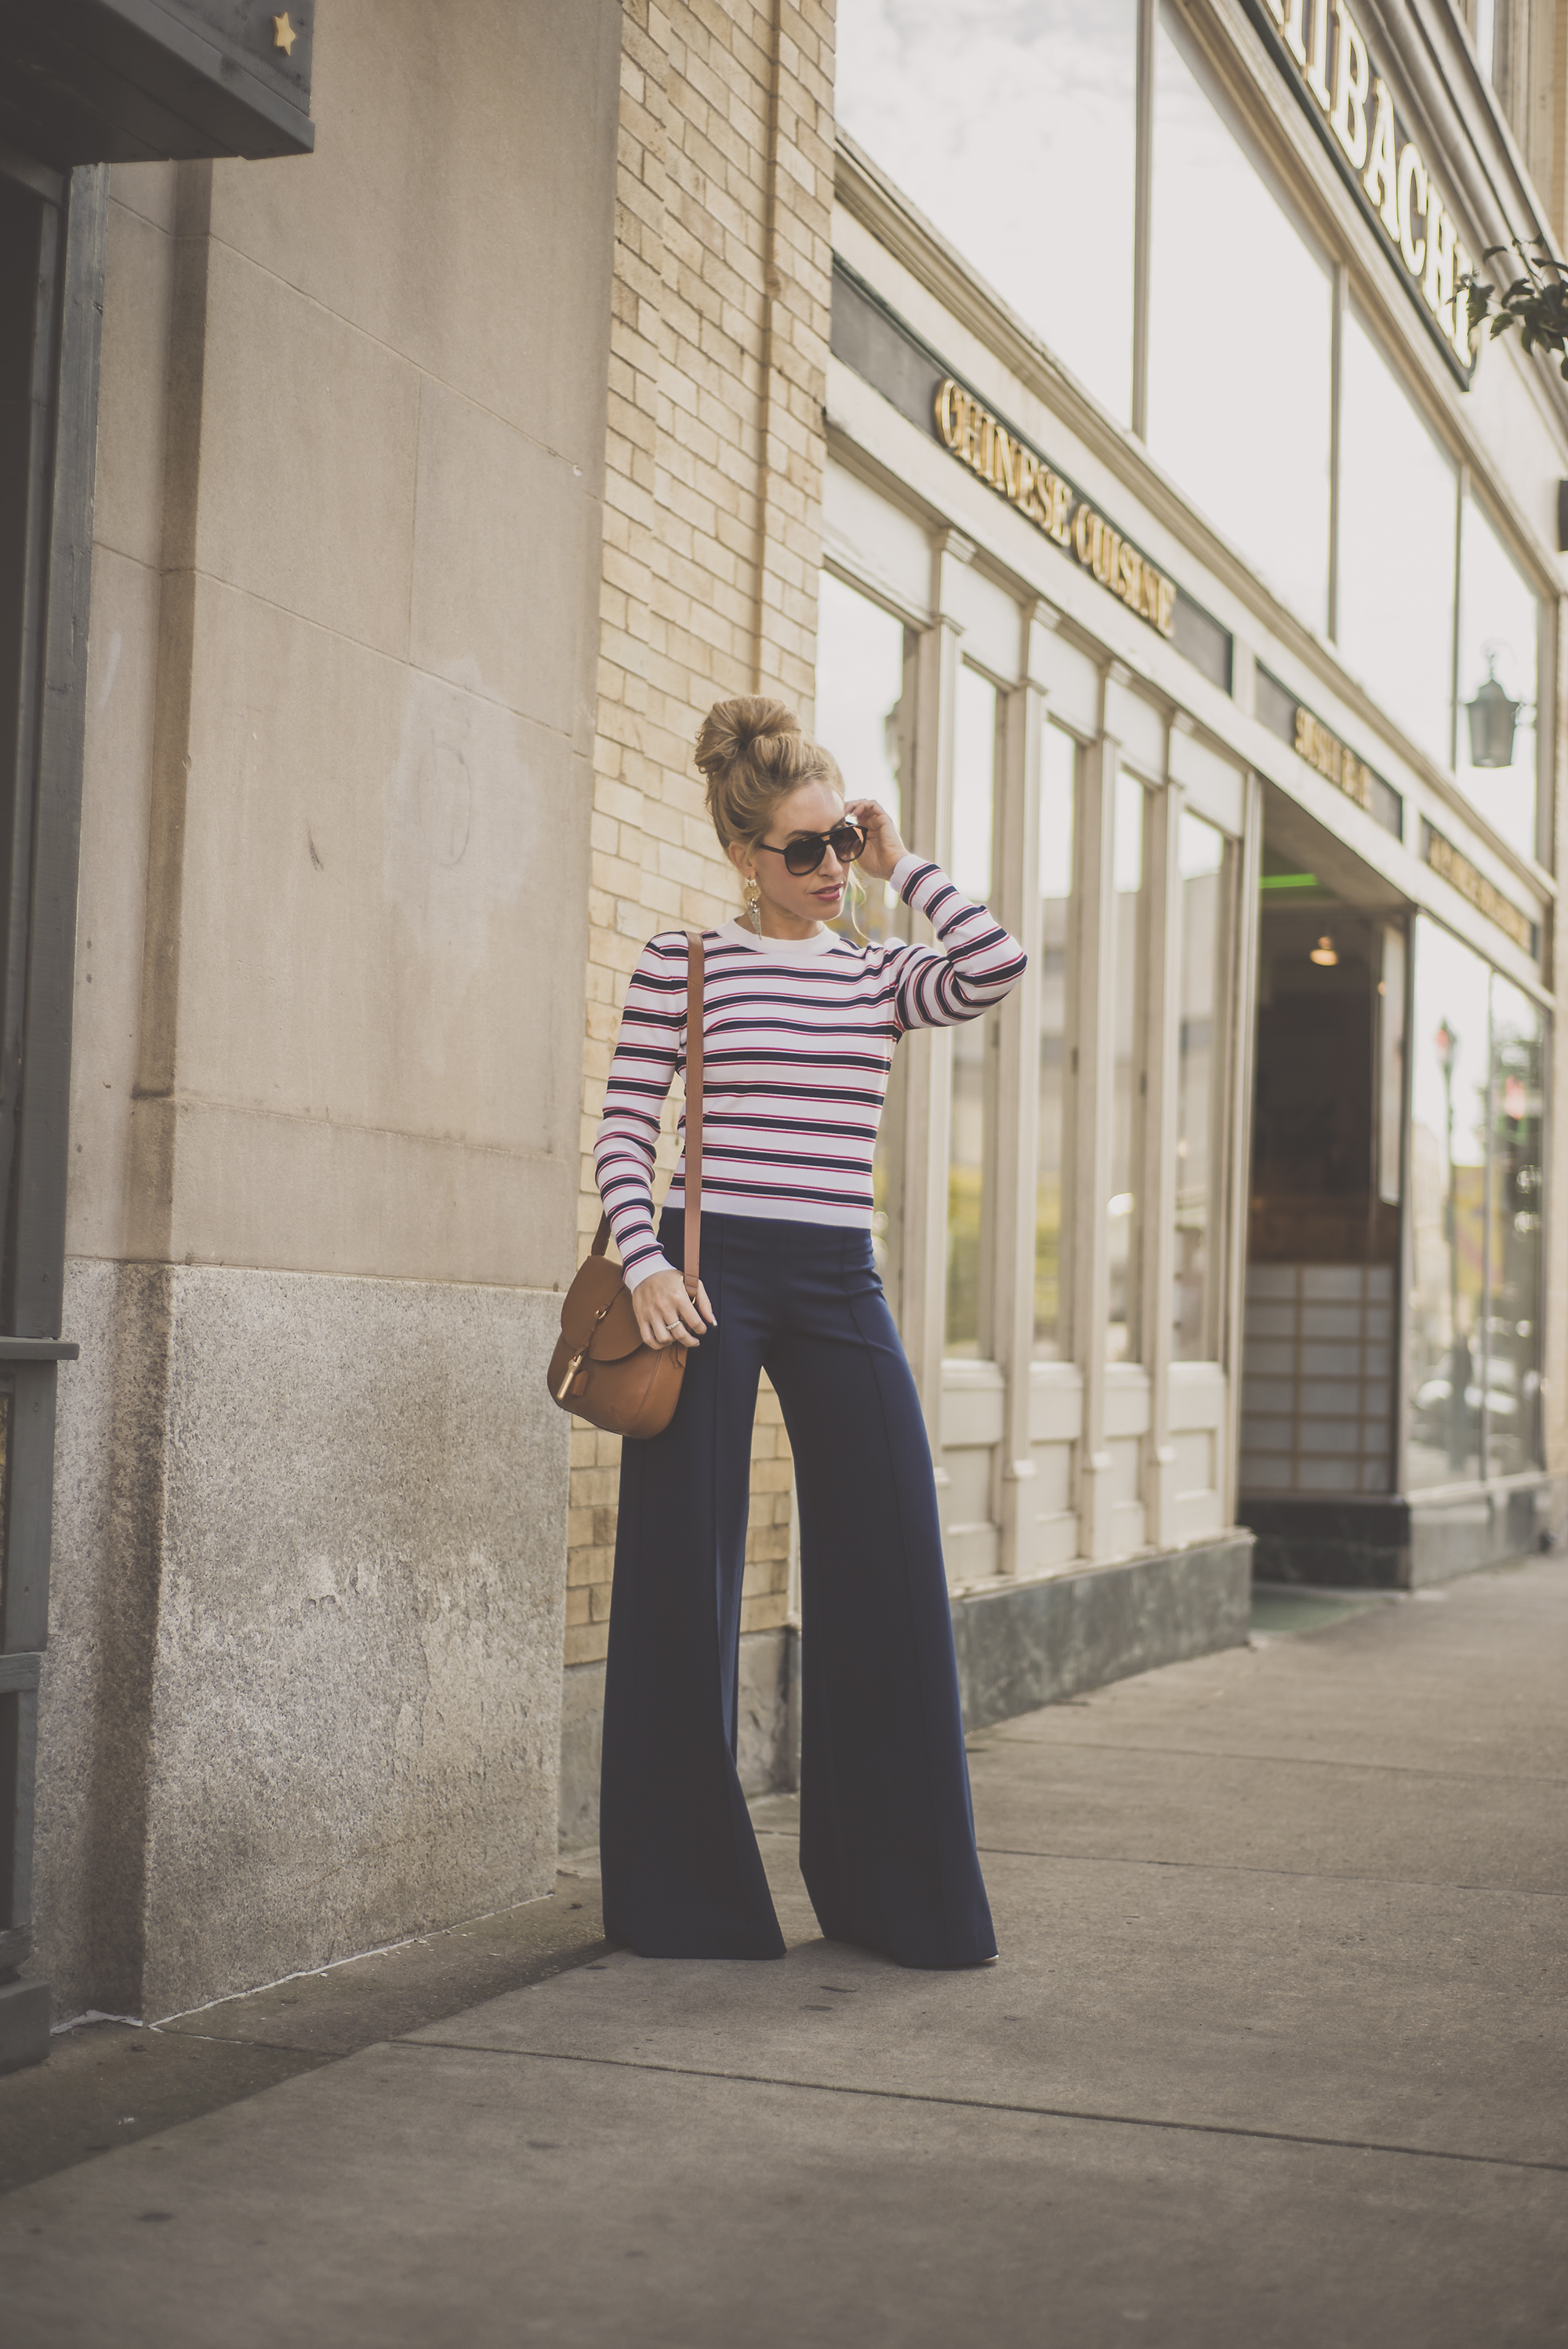 How to Rock the Wide Leg Pant